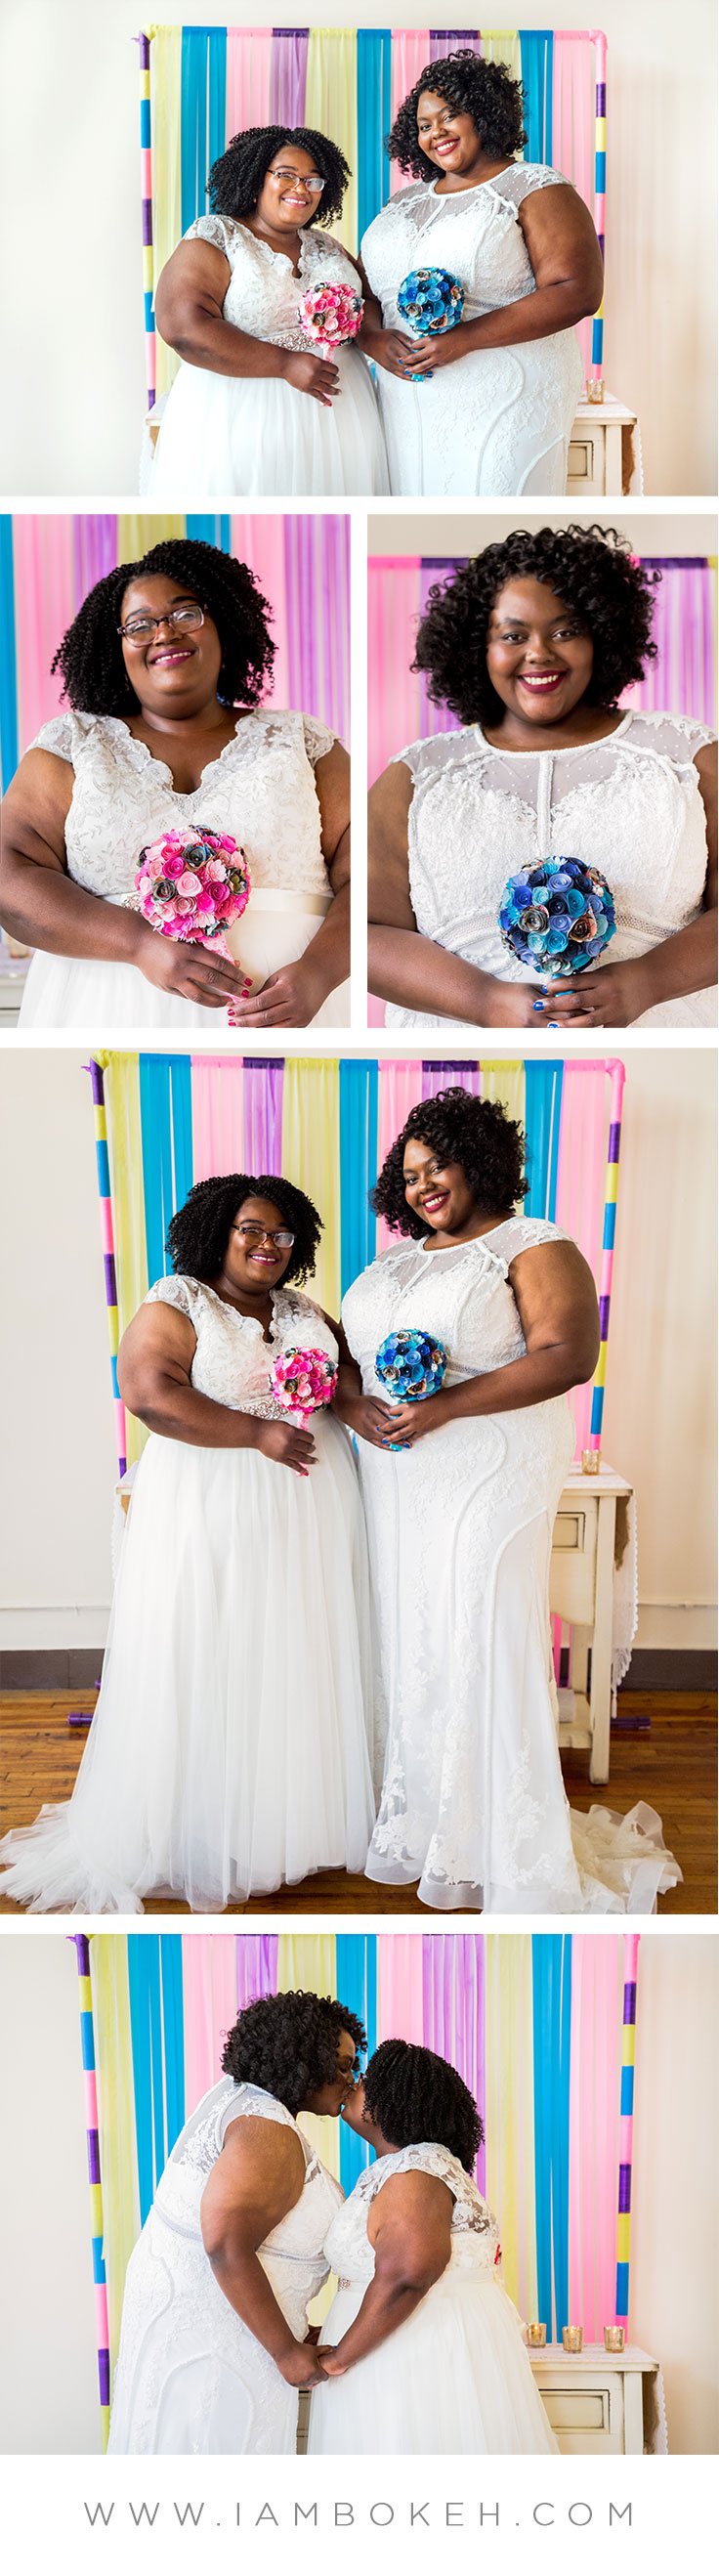 Bokéh Studios | Chicago Wedding at Creativo Loft: Elizabeth & LaQueisha